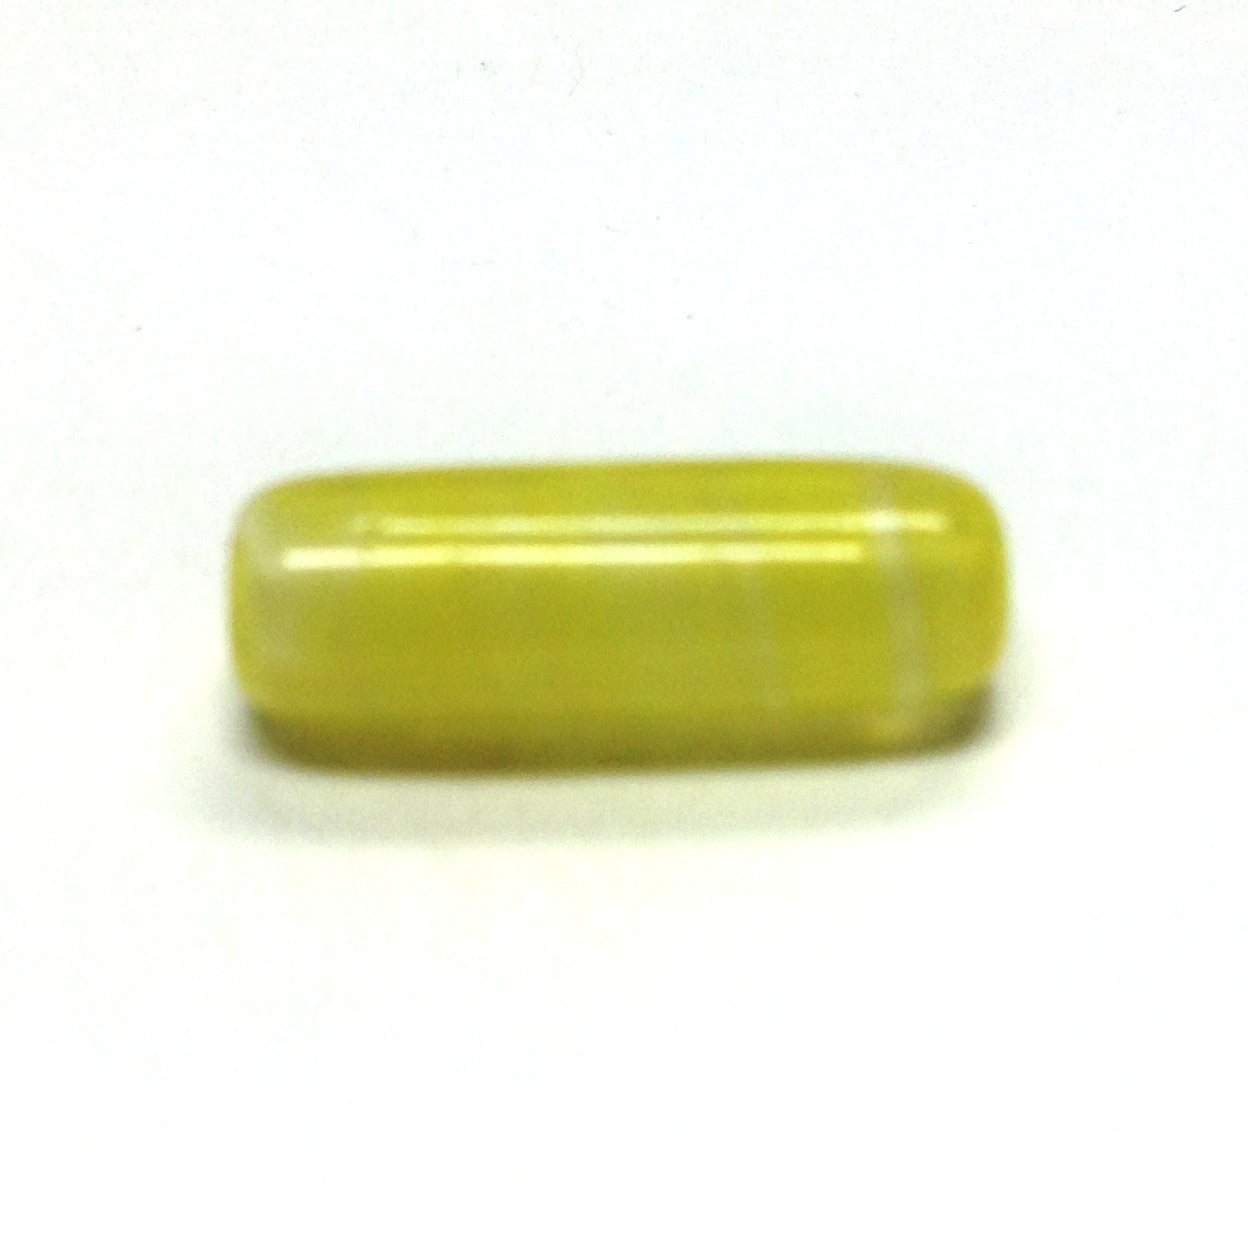 14X5MM Yellow Glass Tube Bead (36 pieces)